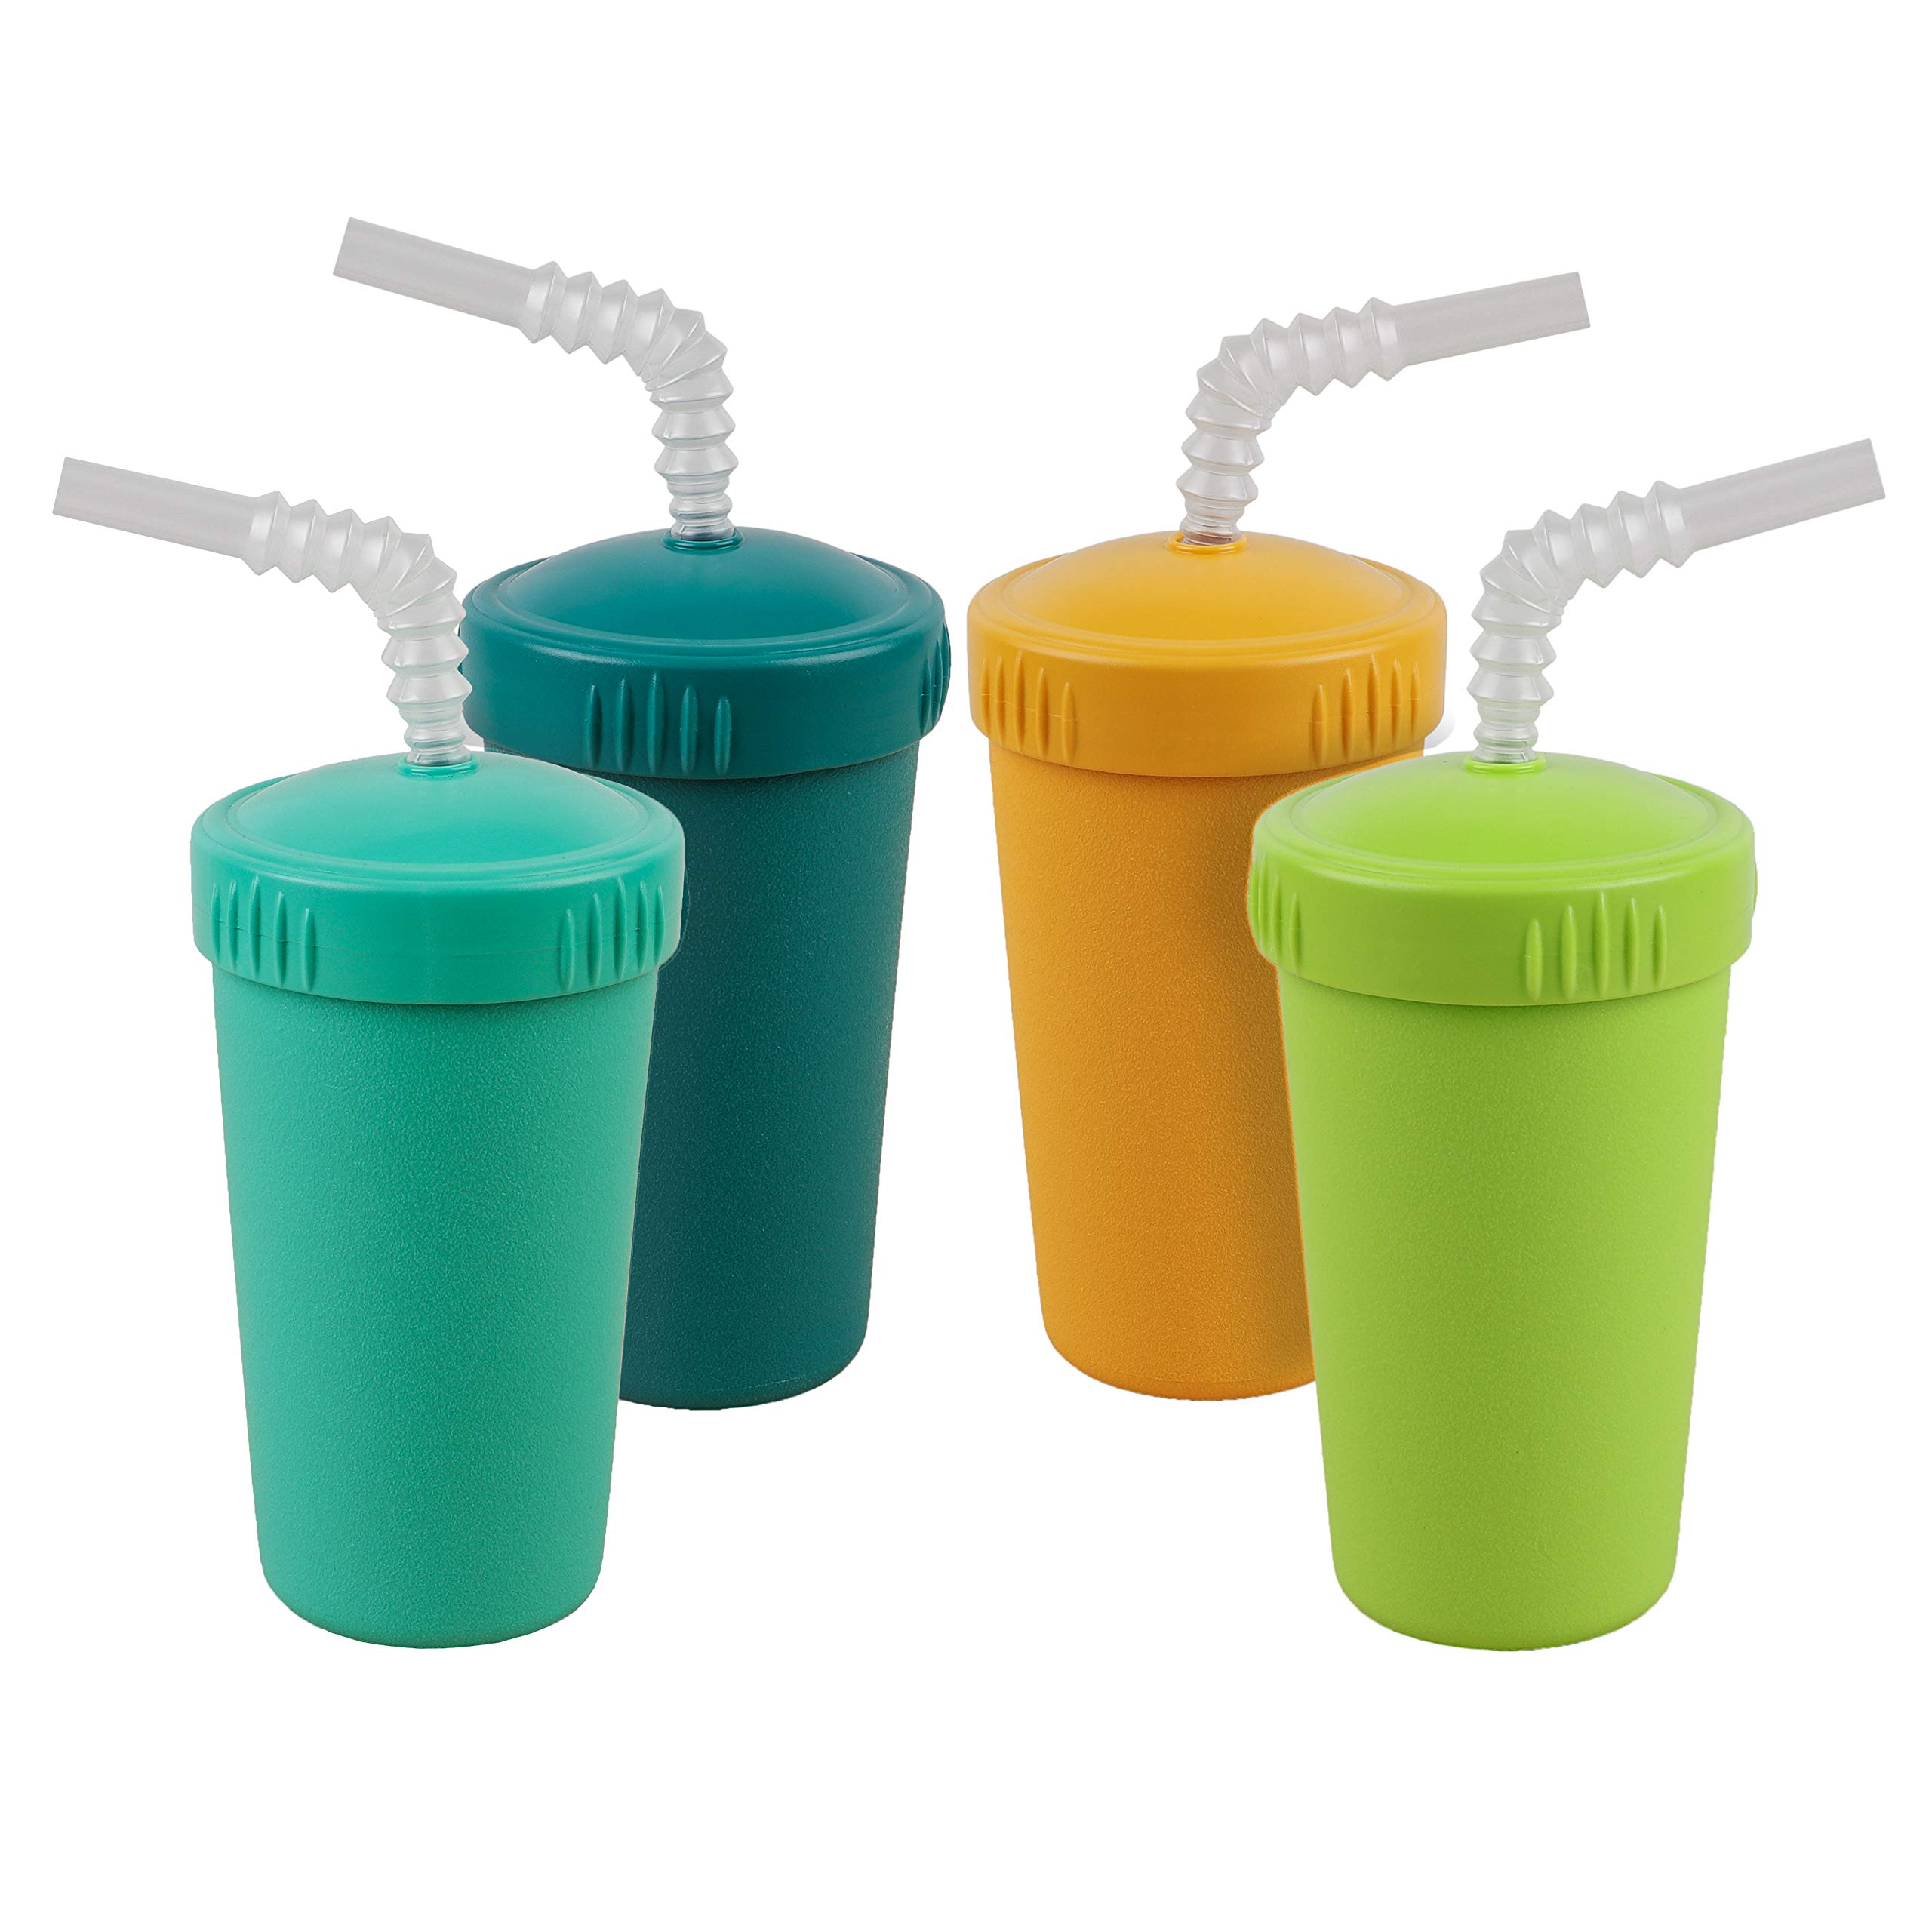 Re-Play Made in USA 4pk Straw Cups with Bendable Straw in Aqua, Sunny Yellow, Lime Green and Teal   Made from Eco Friendly Heavyweight Recycled Milk Jugs - Virtually Indestructible (Aqua Asst+)